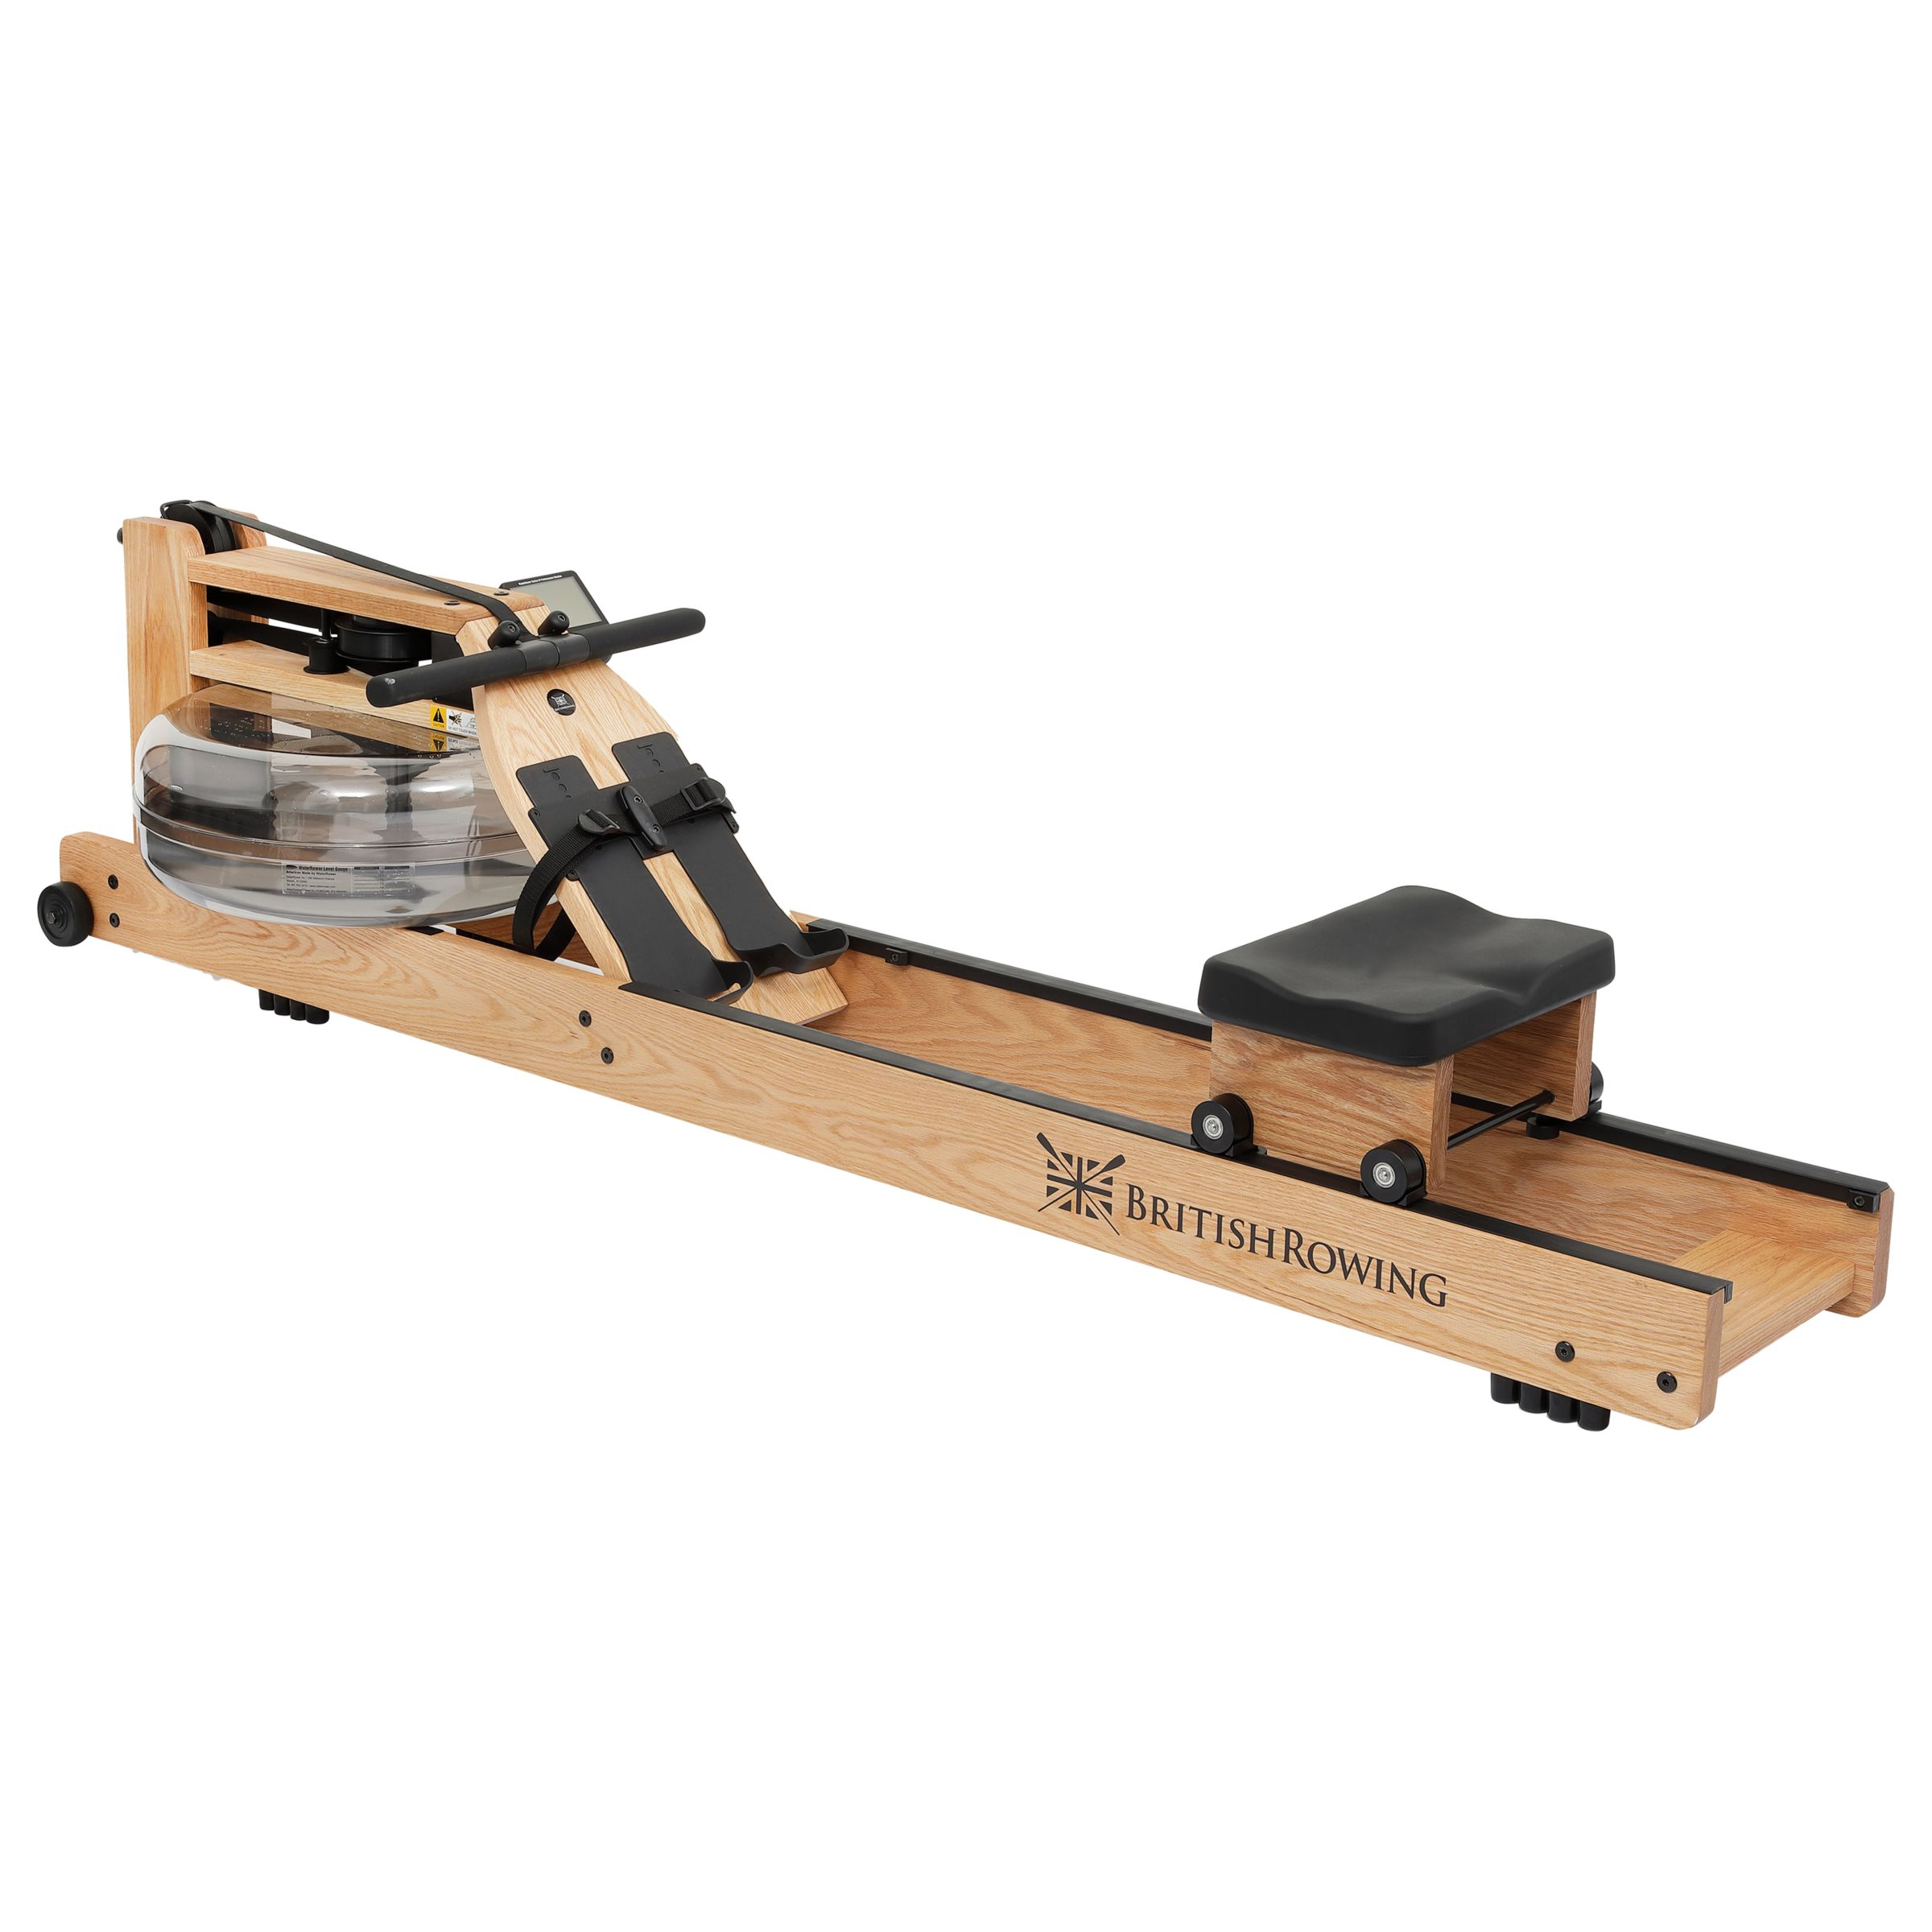 Buy WaterRower British Rowing Machine with S4 Performance Monitor, White Oak Online at johnlewis.com